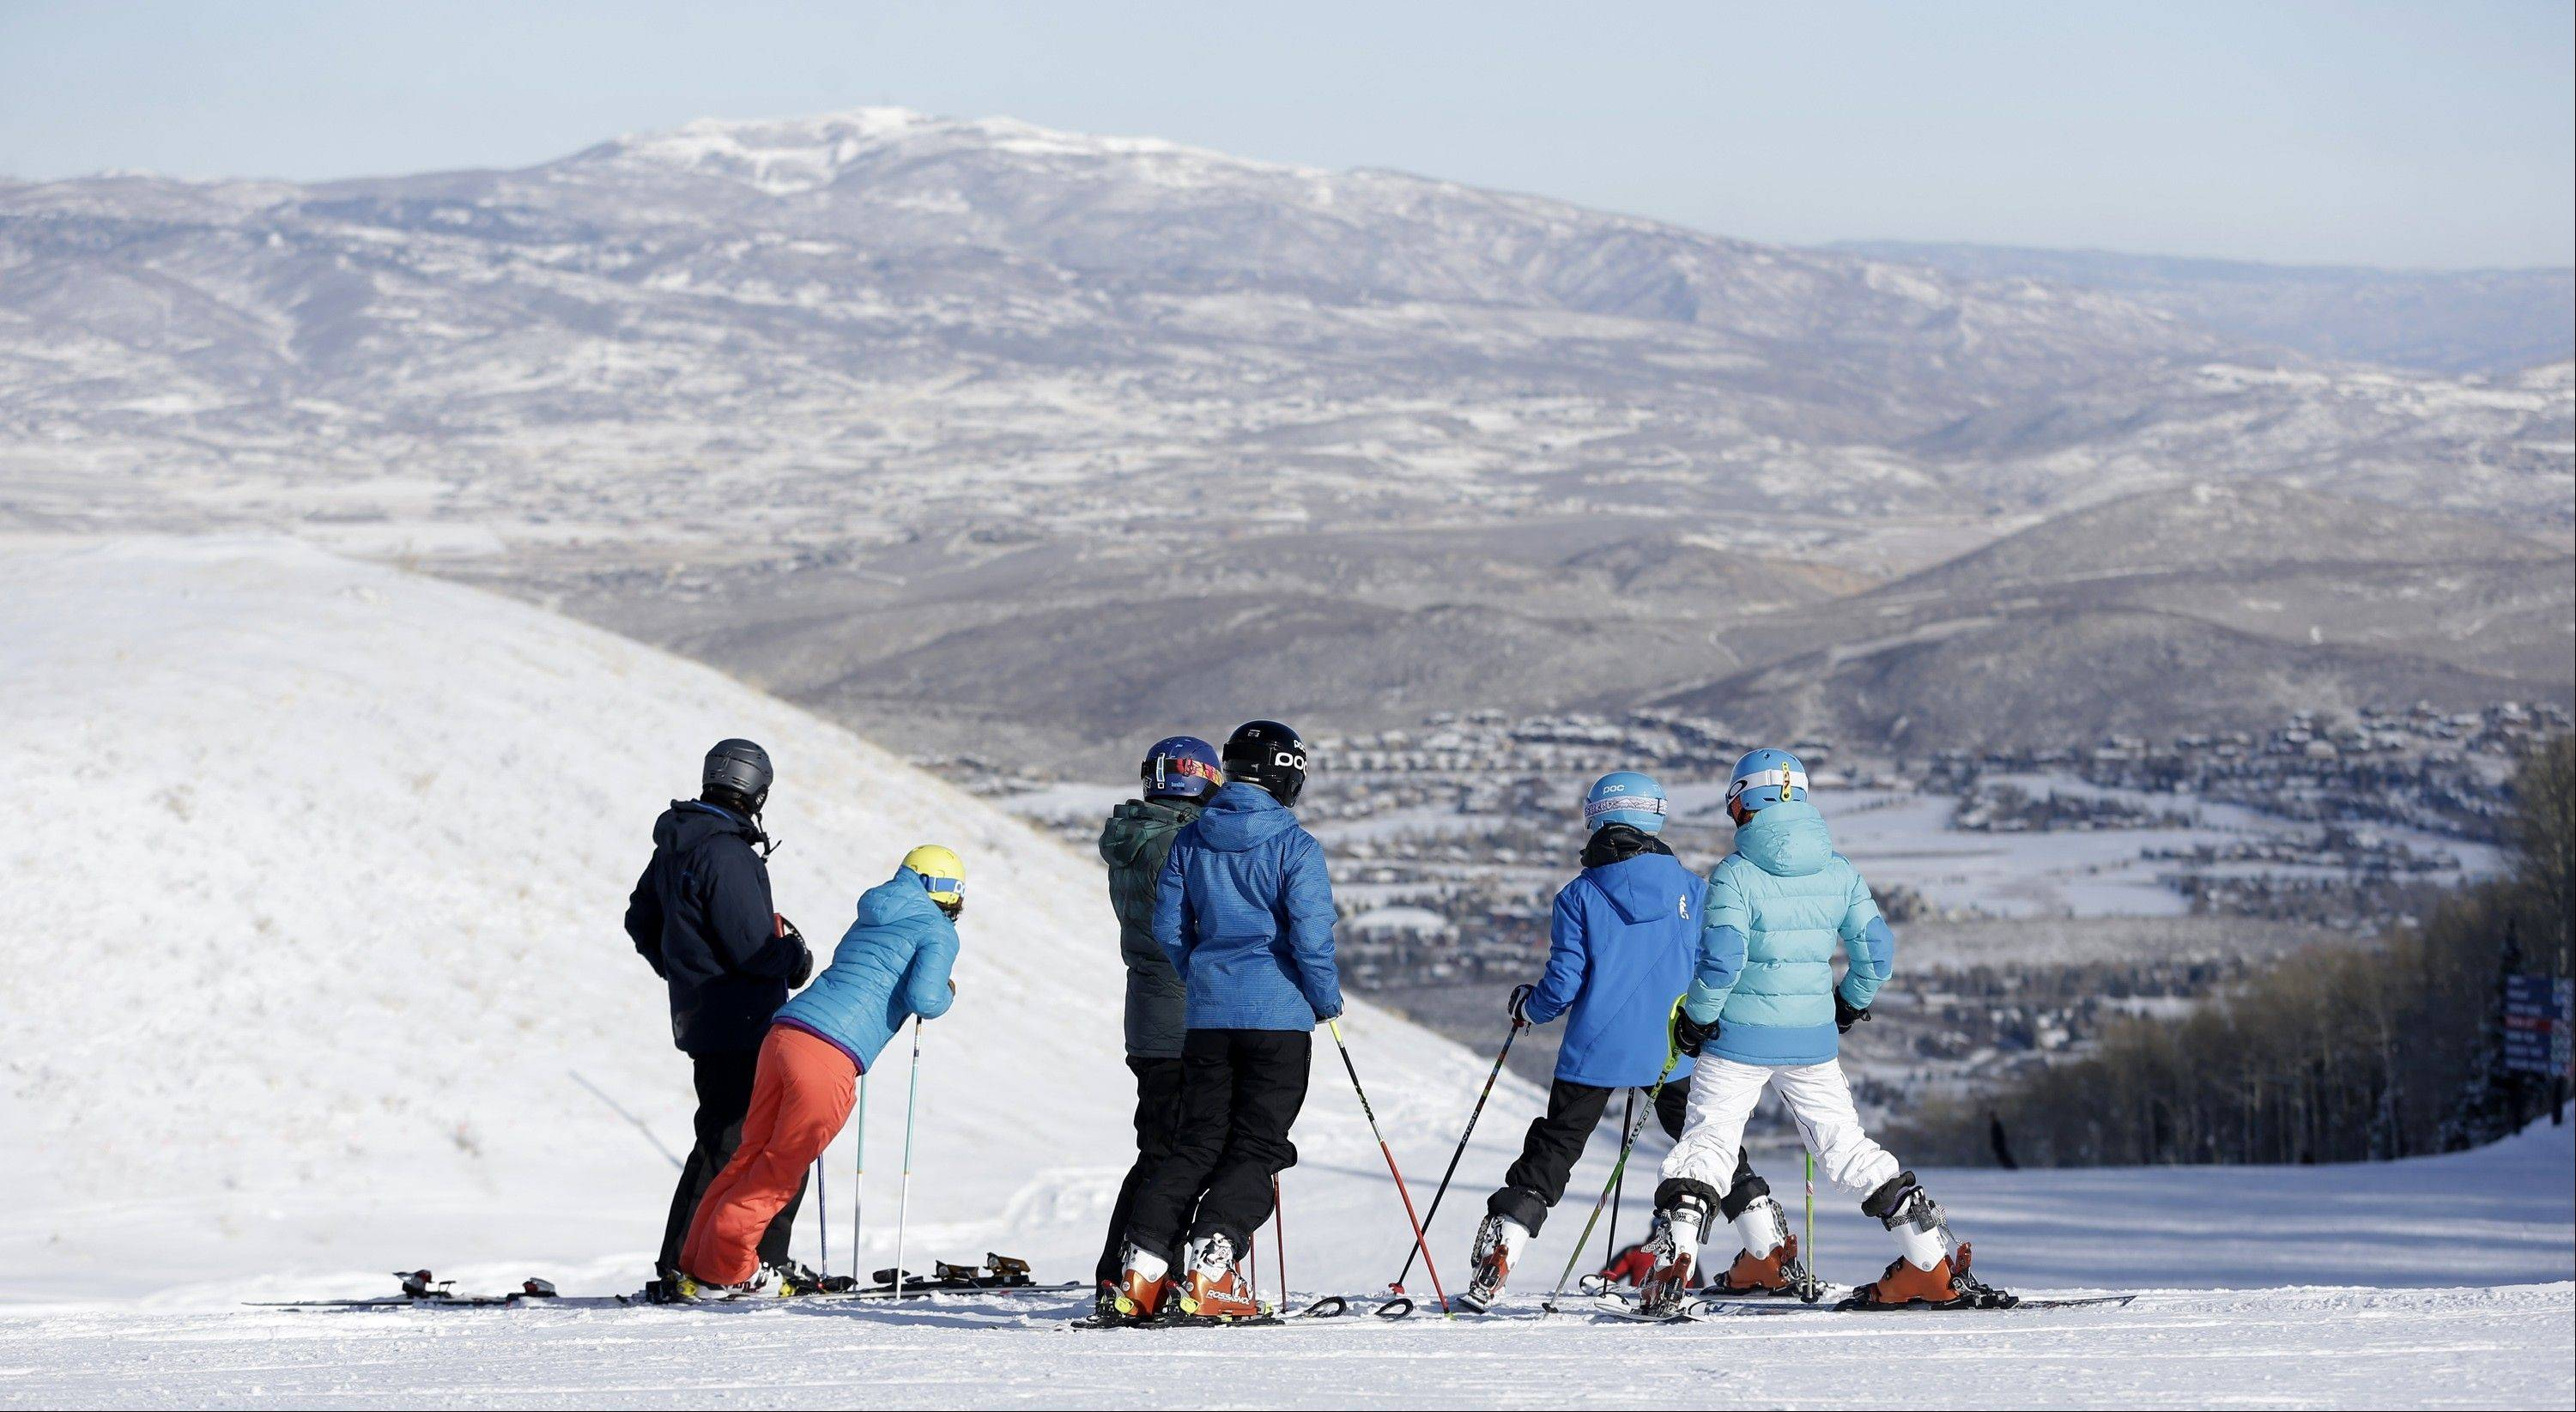 Skiers of all ages try their hand at Park City Mountain Resort in Park City, Utah. Officials say season-pass sales are strong. Park City has booked 28 percent of the season for lodging already.